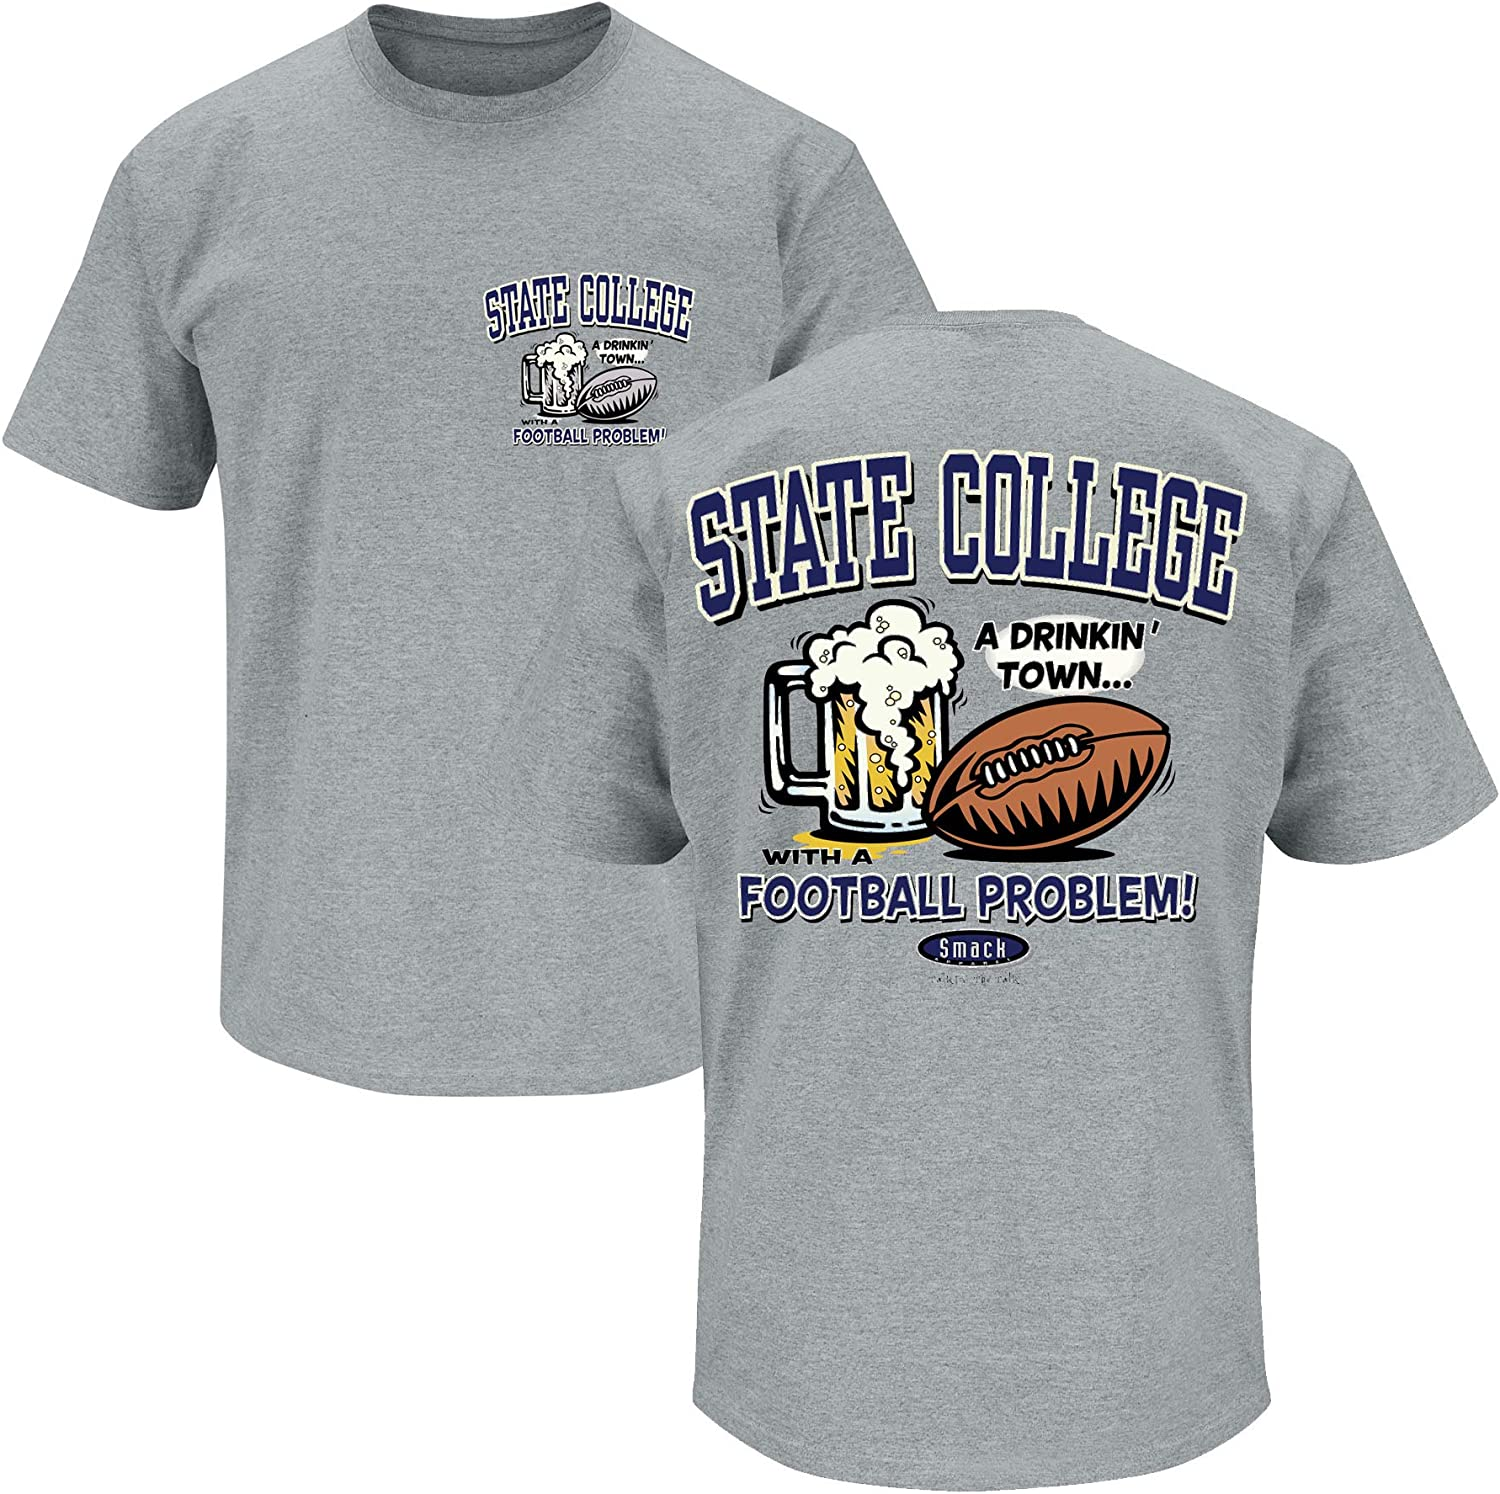 State College A Drinking Town with A Football Problem Gray T-Shirt Smack Apparel Penn State Football Fans Sm-5X